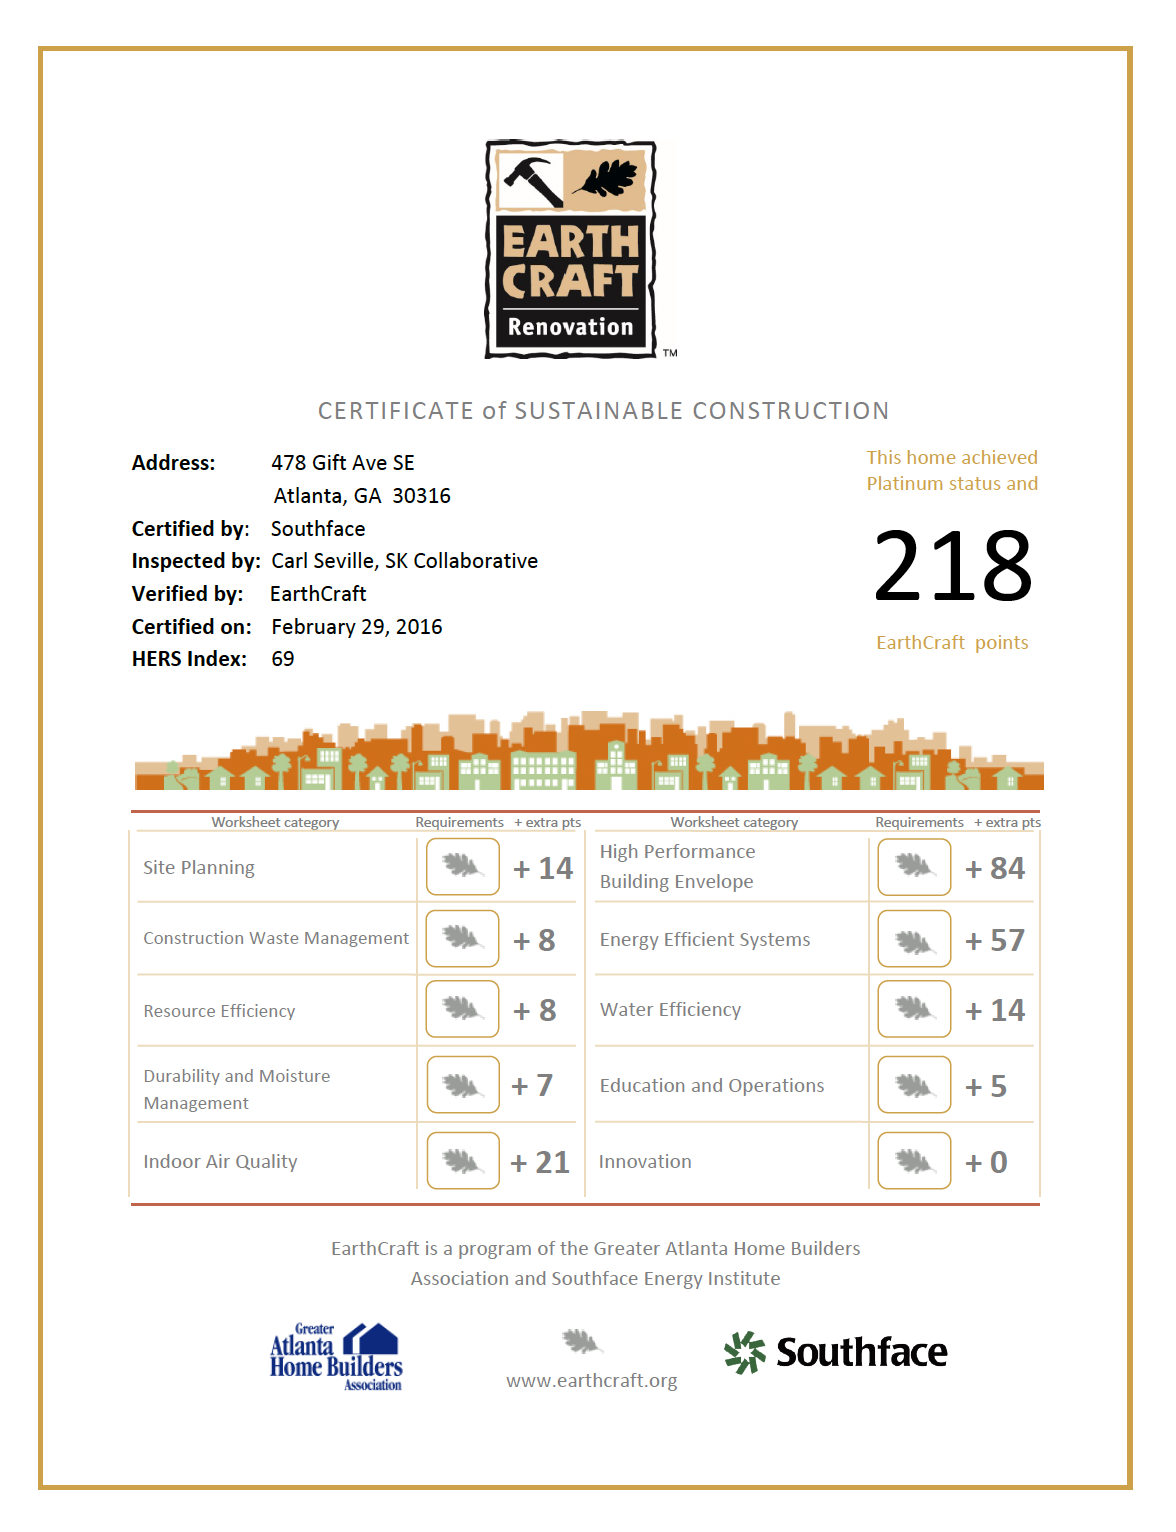 Certified earthcraft platinum green on gift earthcraft renovation certificate 478 gift ave xflitez Images